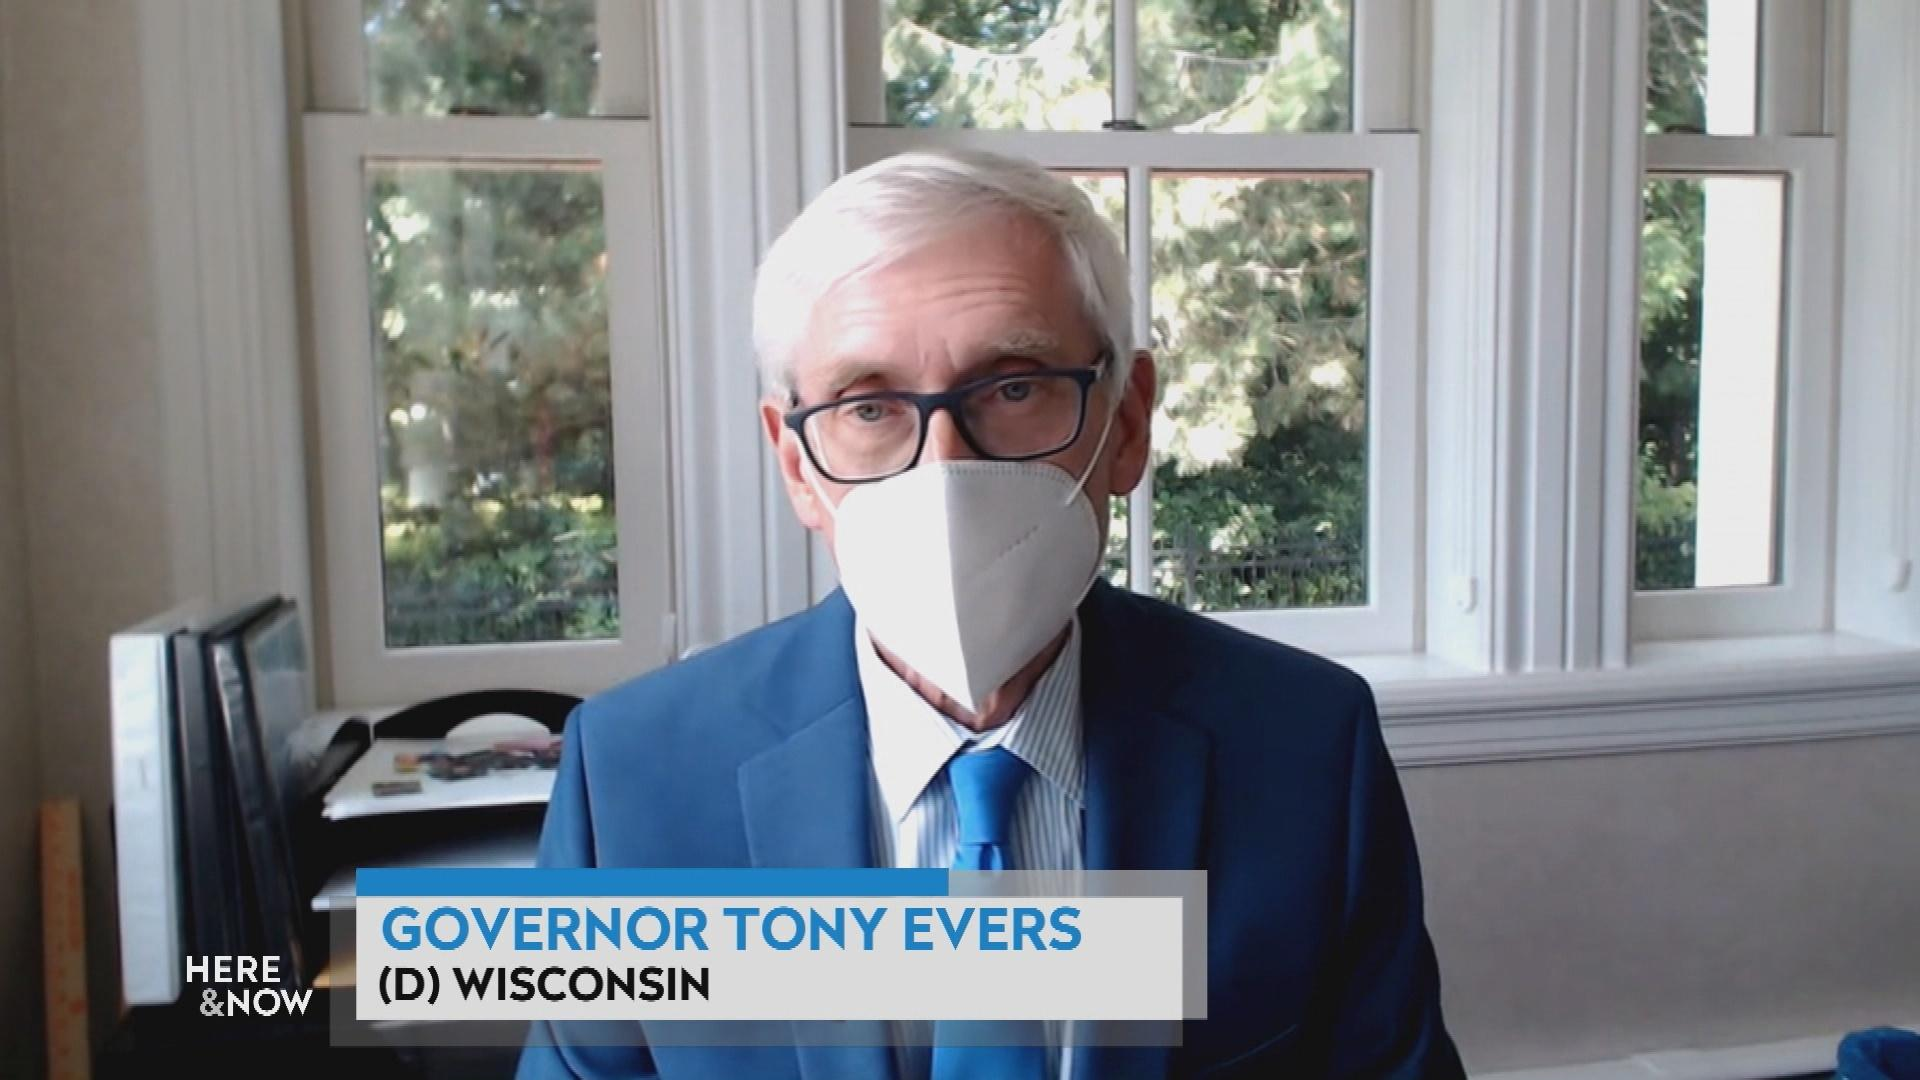 Governor Tony Evers on Coronavirus and Wisconsin